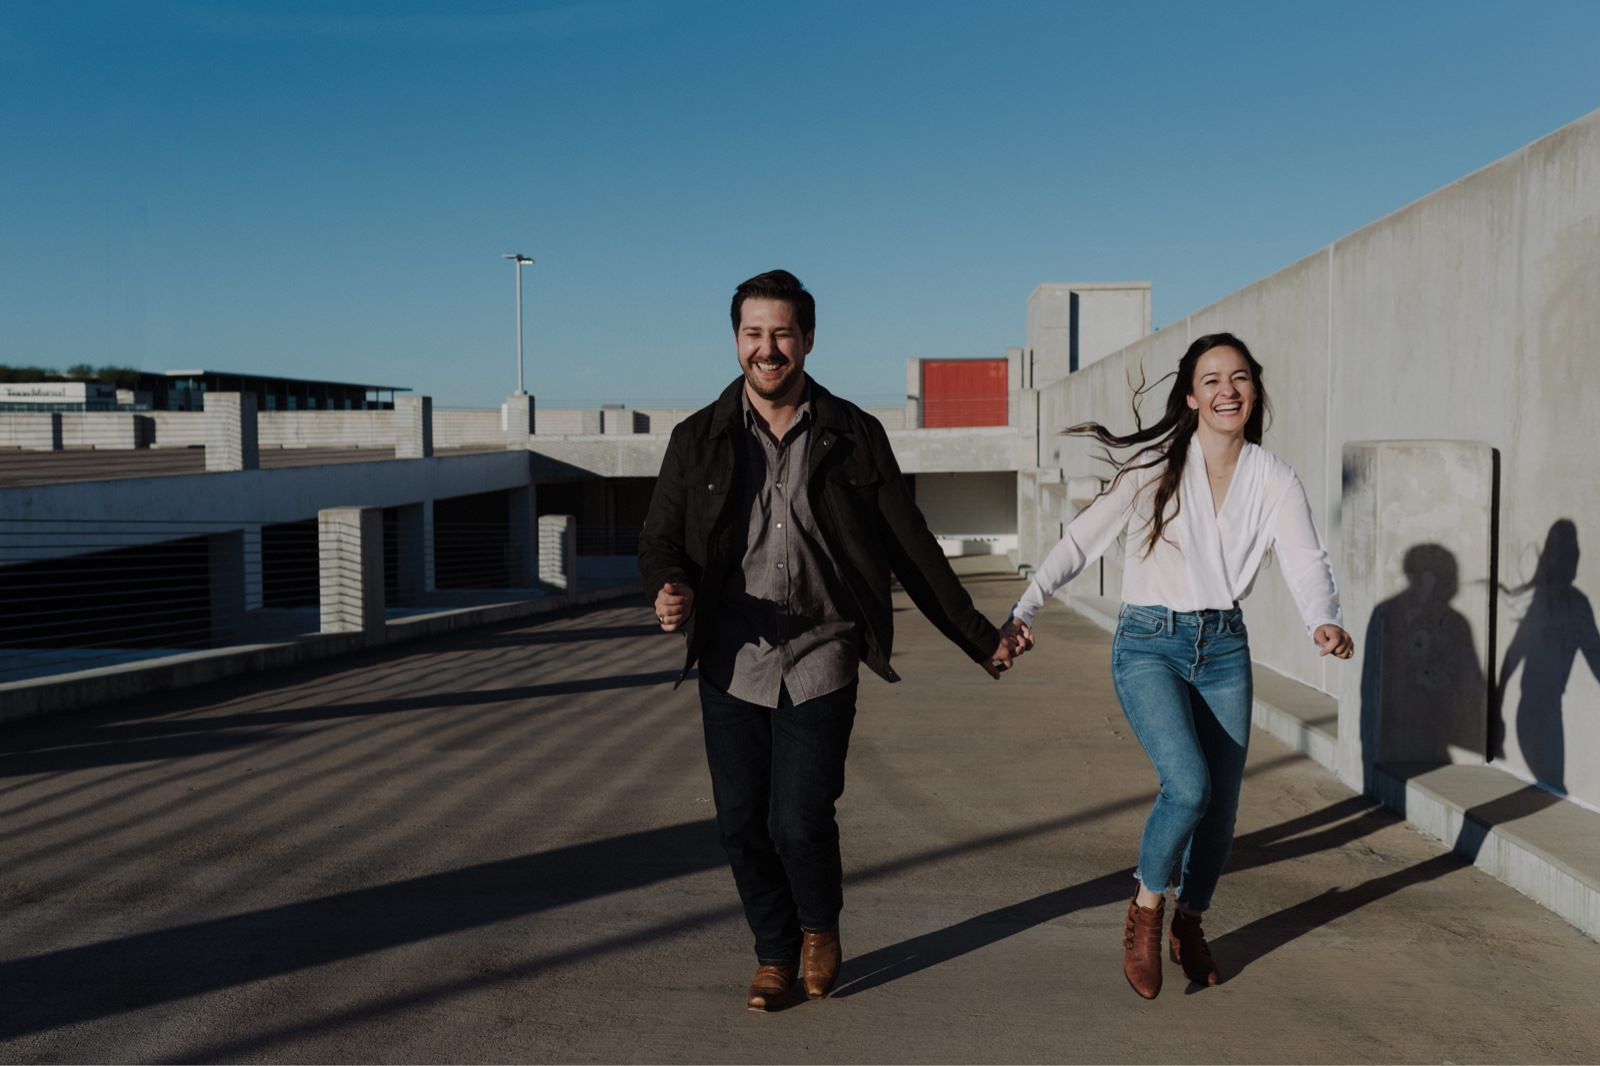 Engaged couple joyfully running hand in hand up an empty parking lot structure